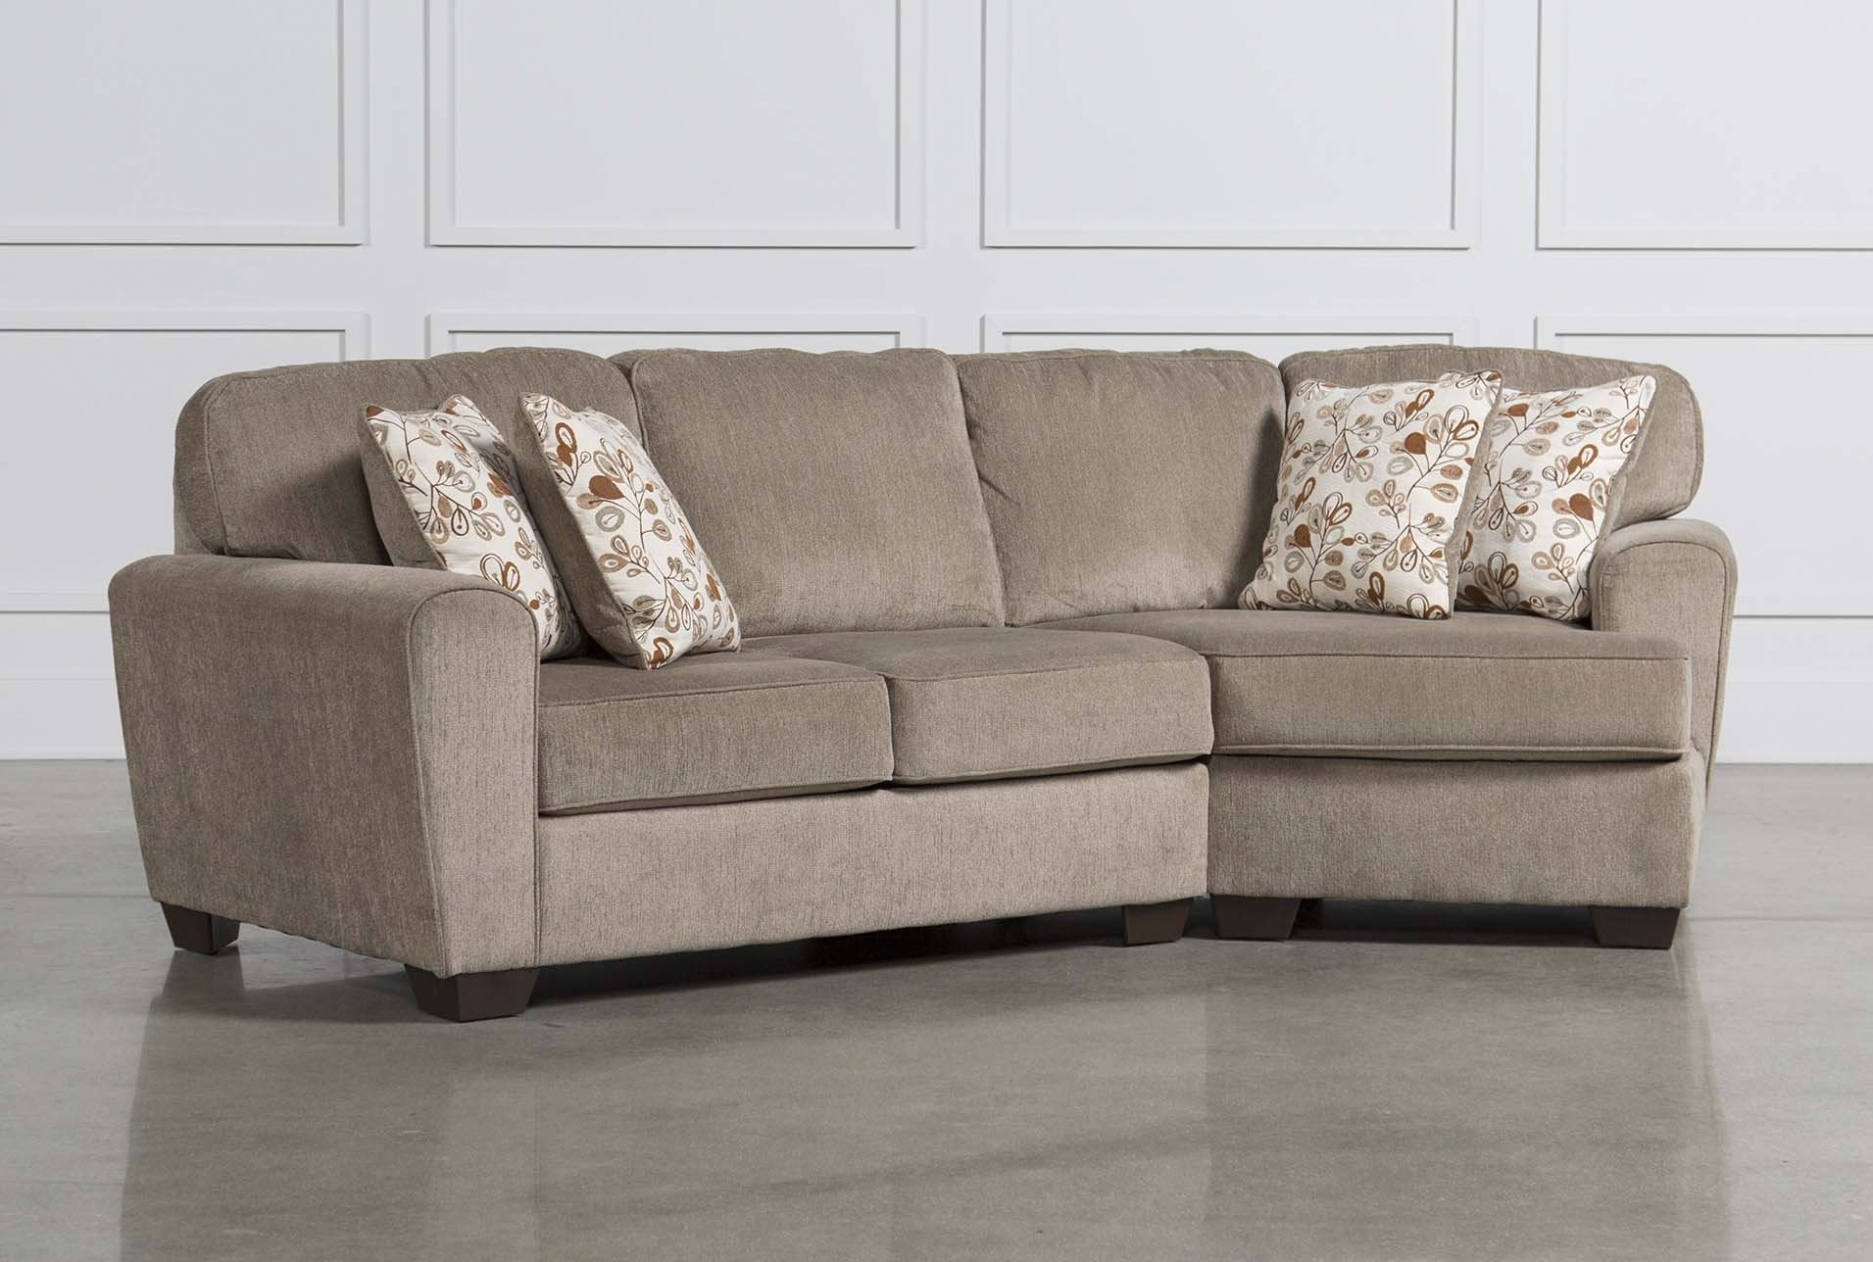 Furniture: Patola Park 4 Piece Sectional W Raf Cuddler Living Spaces throughout Sectional Sofas With Cuddler (Image 5 of 10)